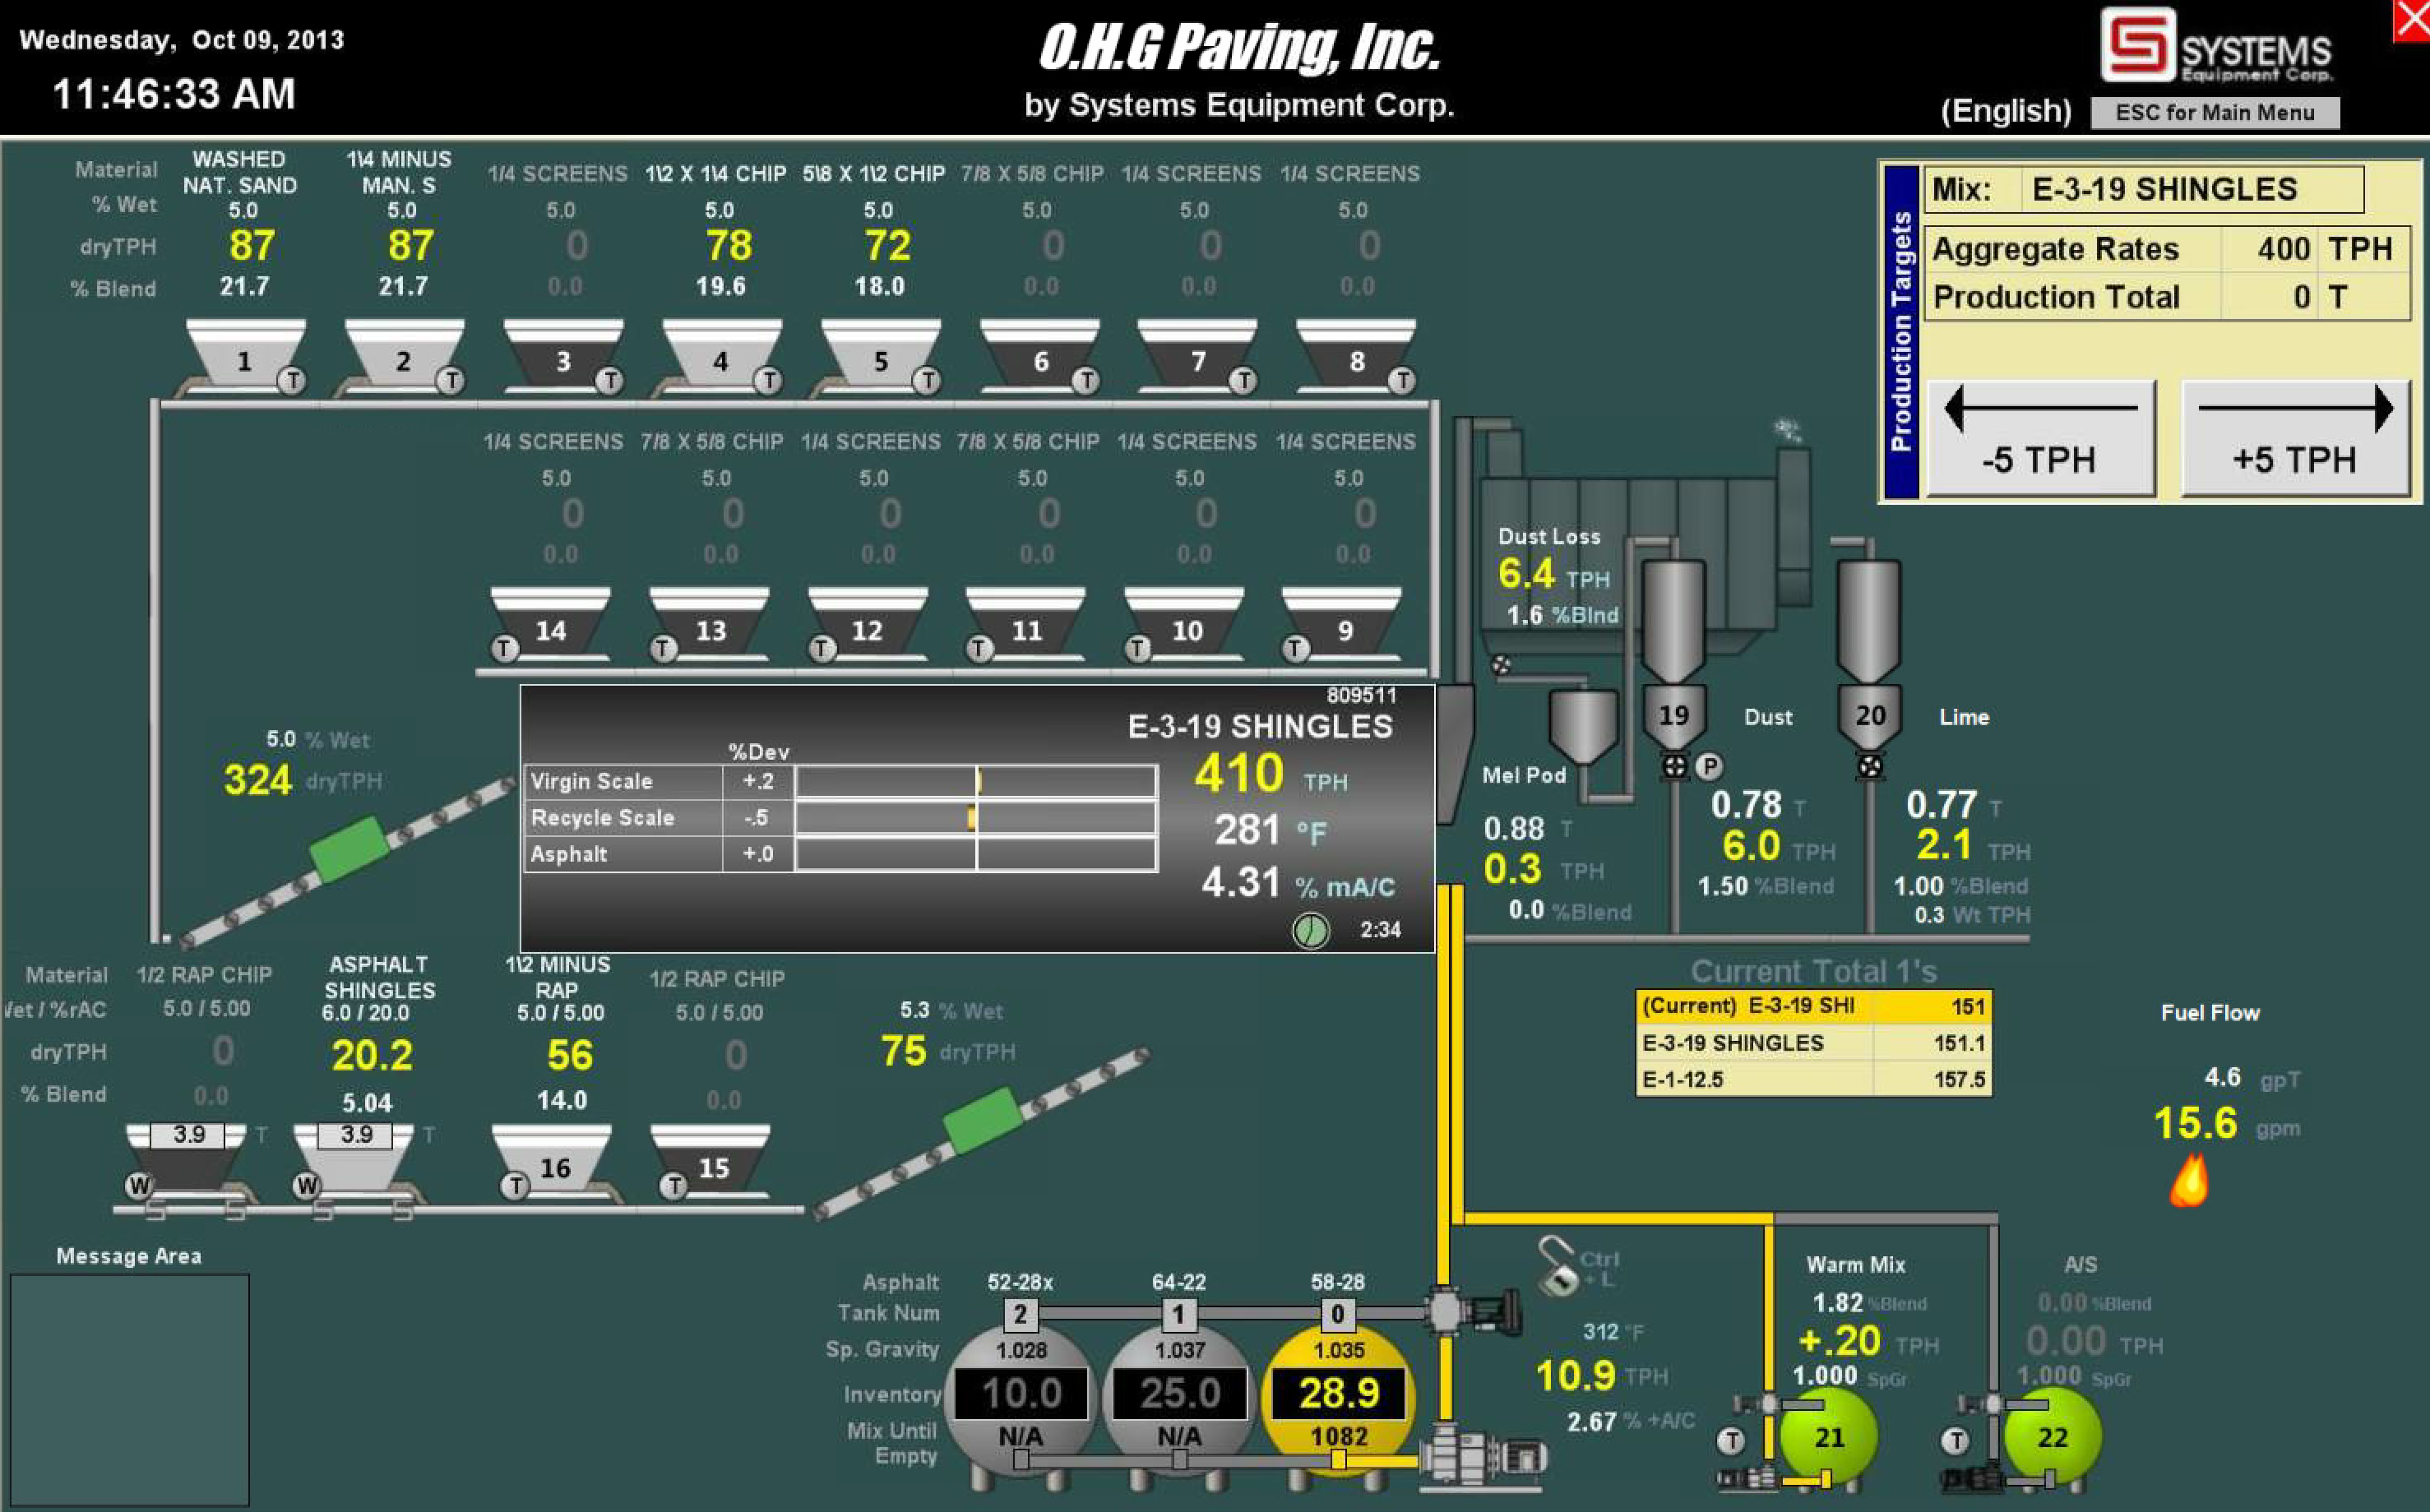 The ADP-100 from Systems Equipment uses a graphic display, allowing feeders and asphalt tanks to be labeled with the material they contain and mix formulas labeled with logical names.